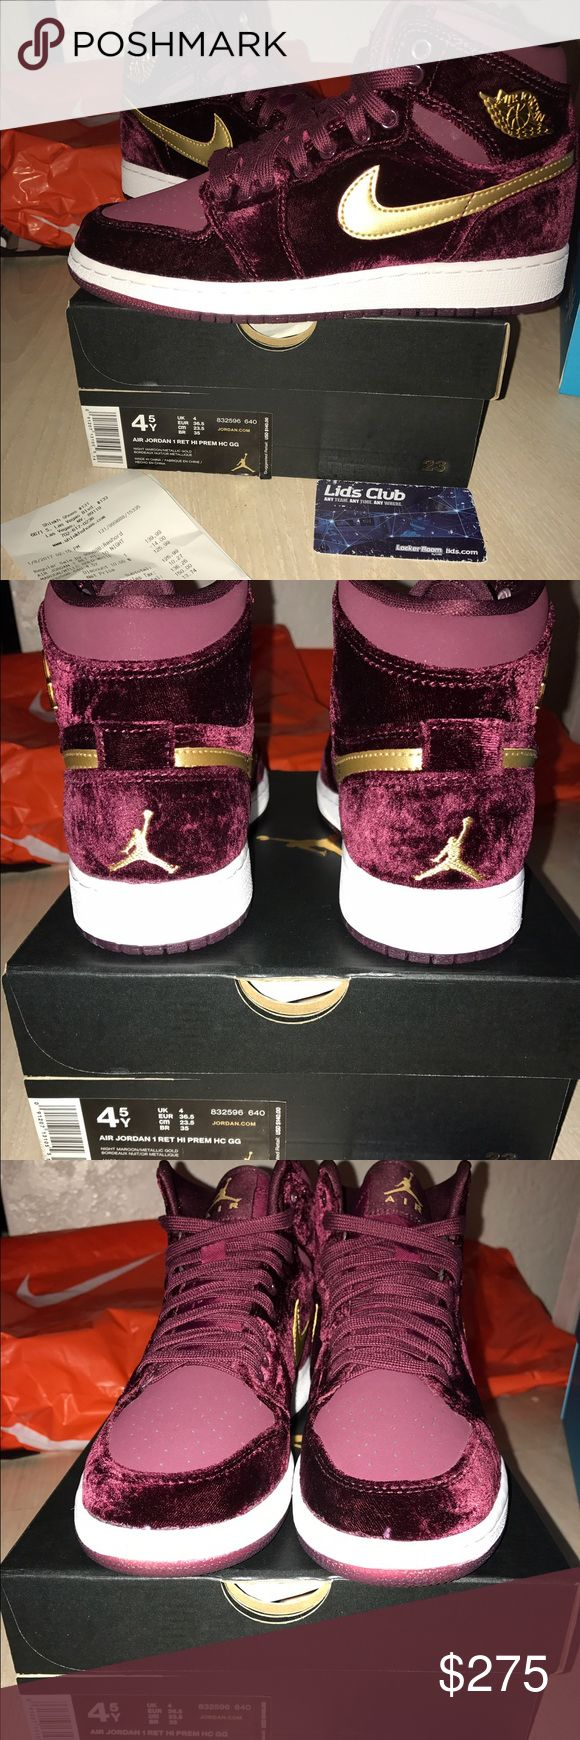 100% Authentic Jordan 1 GS Heiress Brand new never tried on. Comes with receipt and original box. Jordan Shoes Athletic Shoes